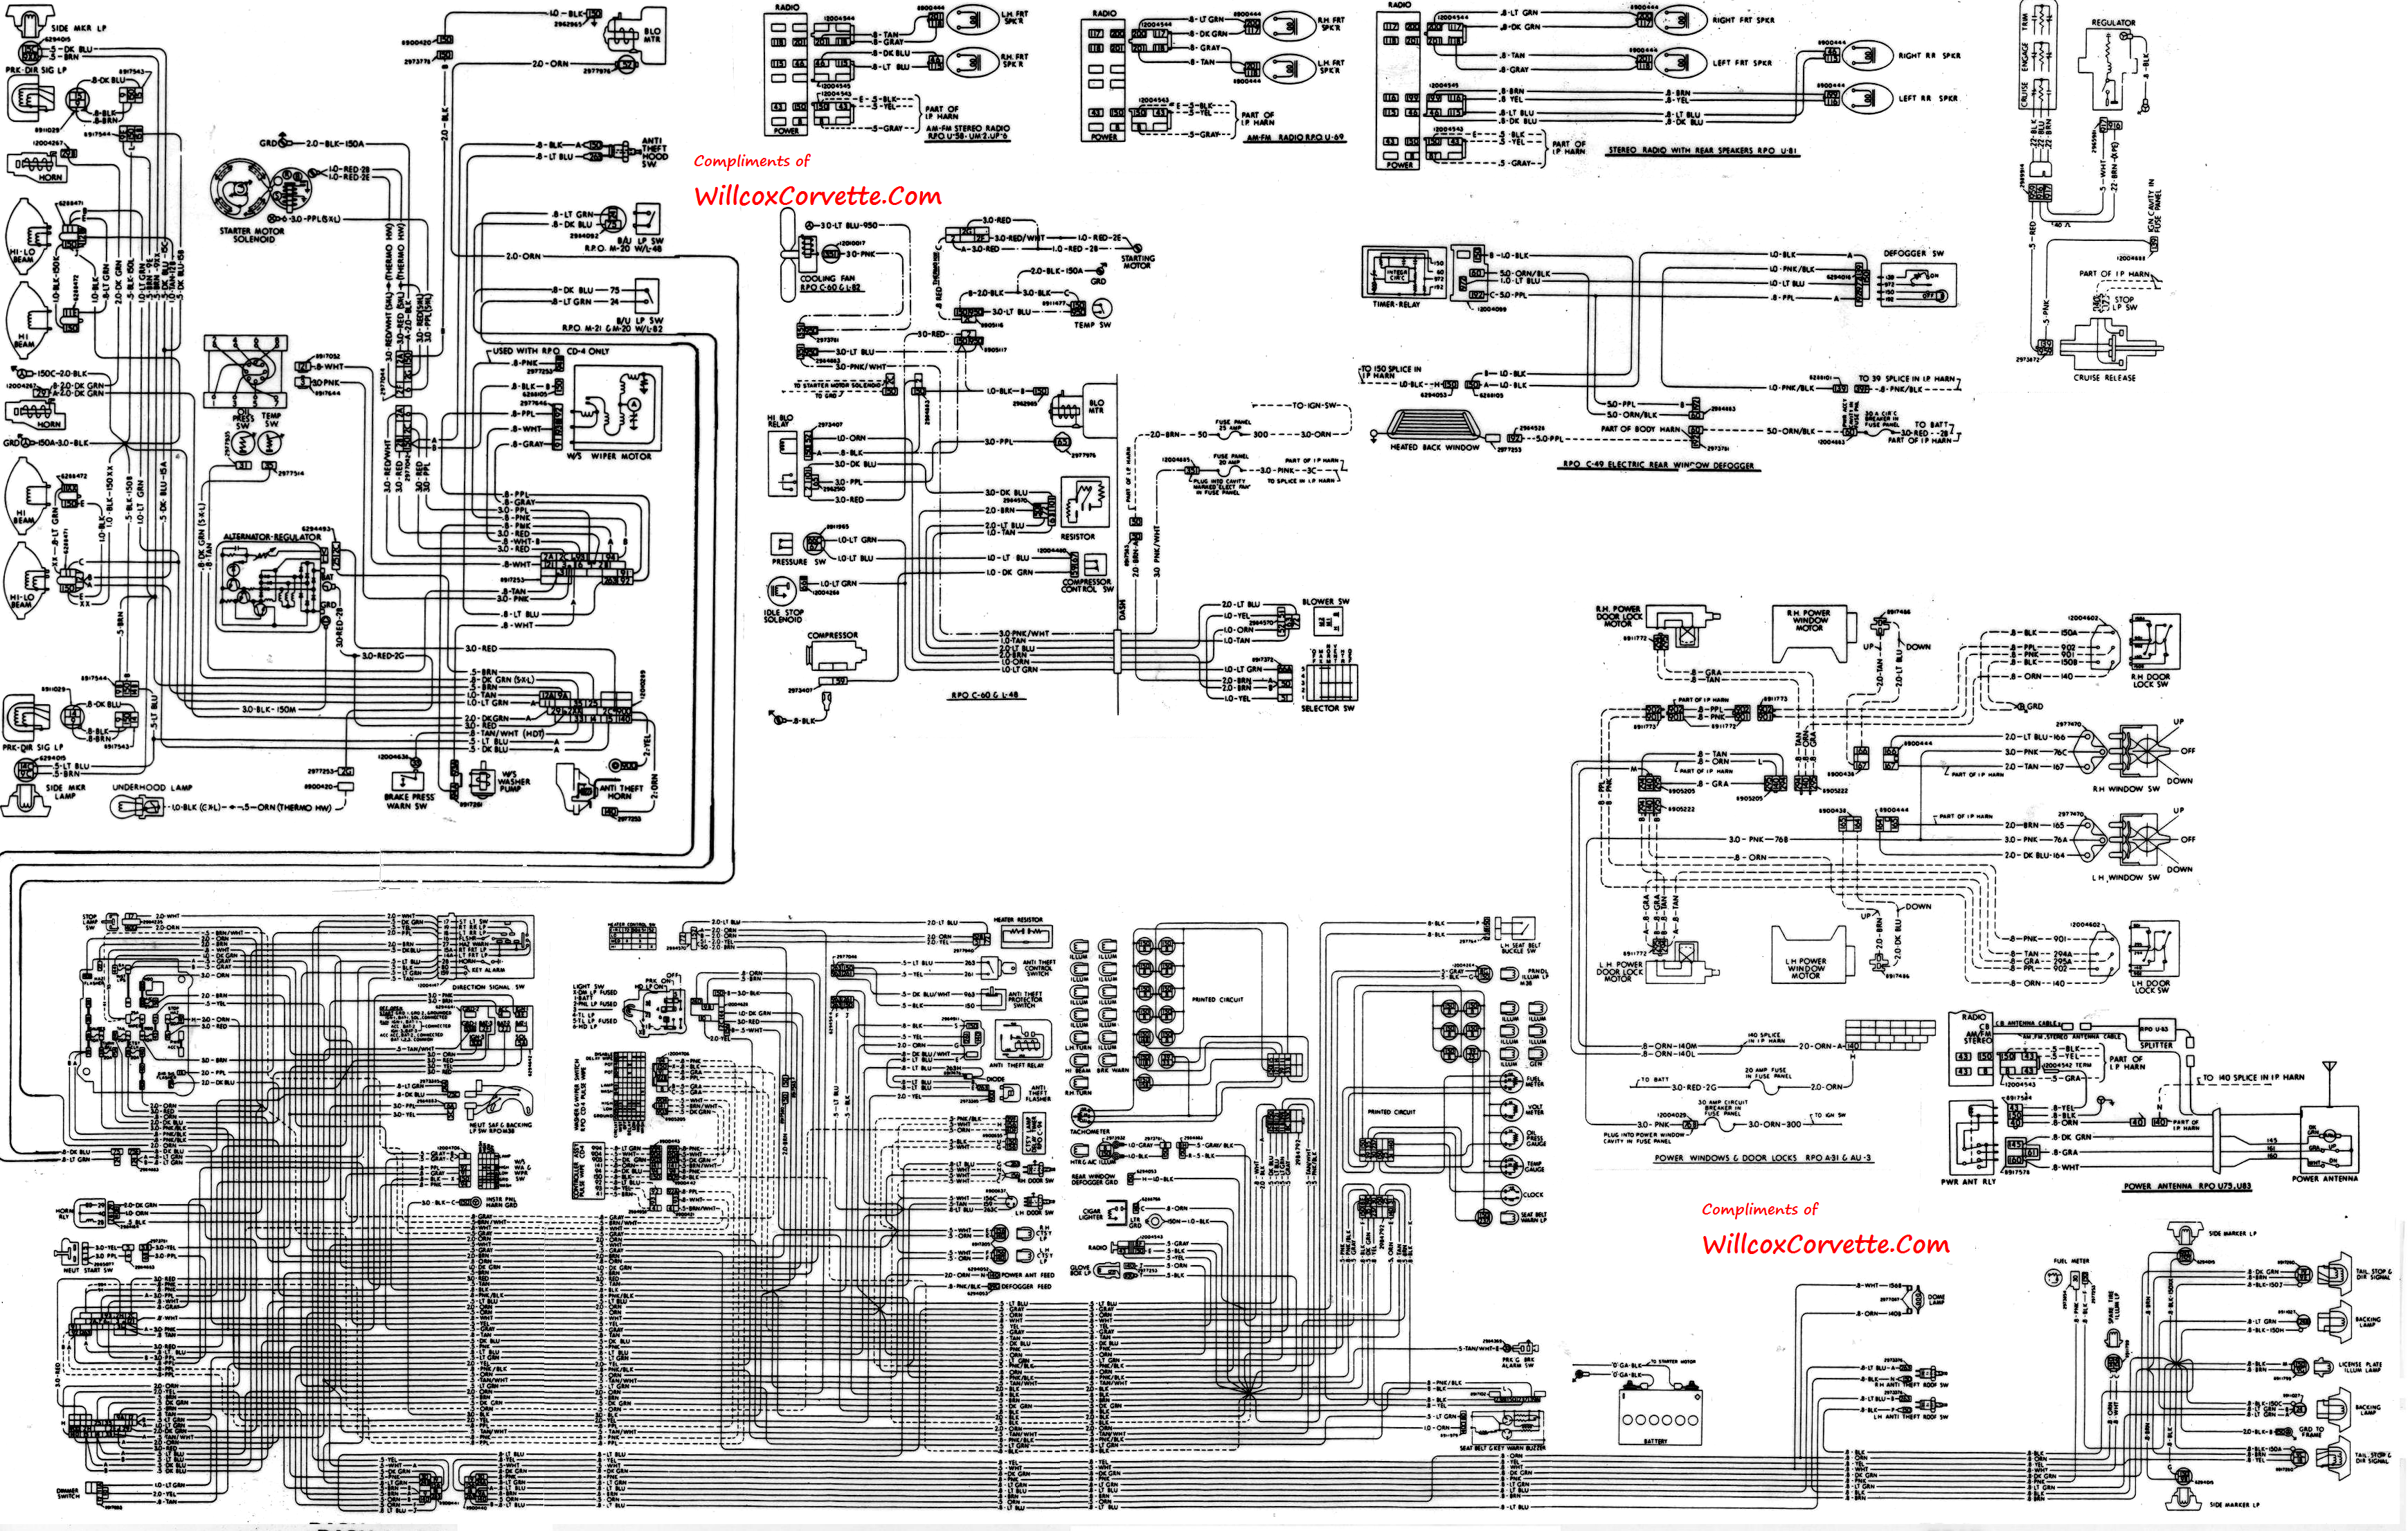 1979 wire diagram 1997 corvette wiring diagram c3 corvette wiring diagram 30 Amp RV Wiring Diagram at soozxer.org